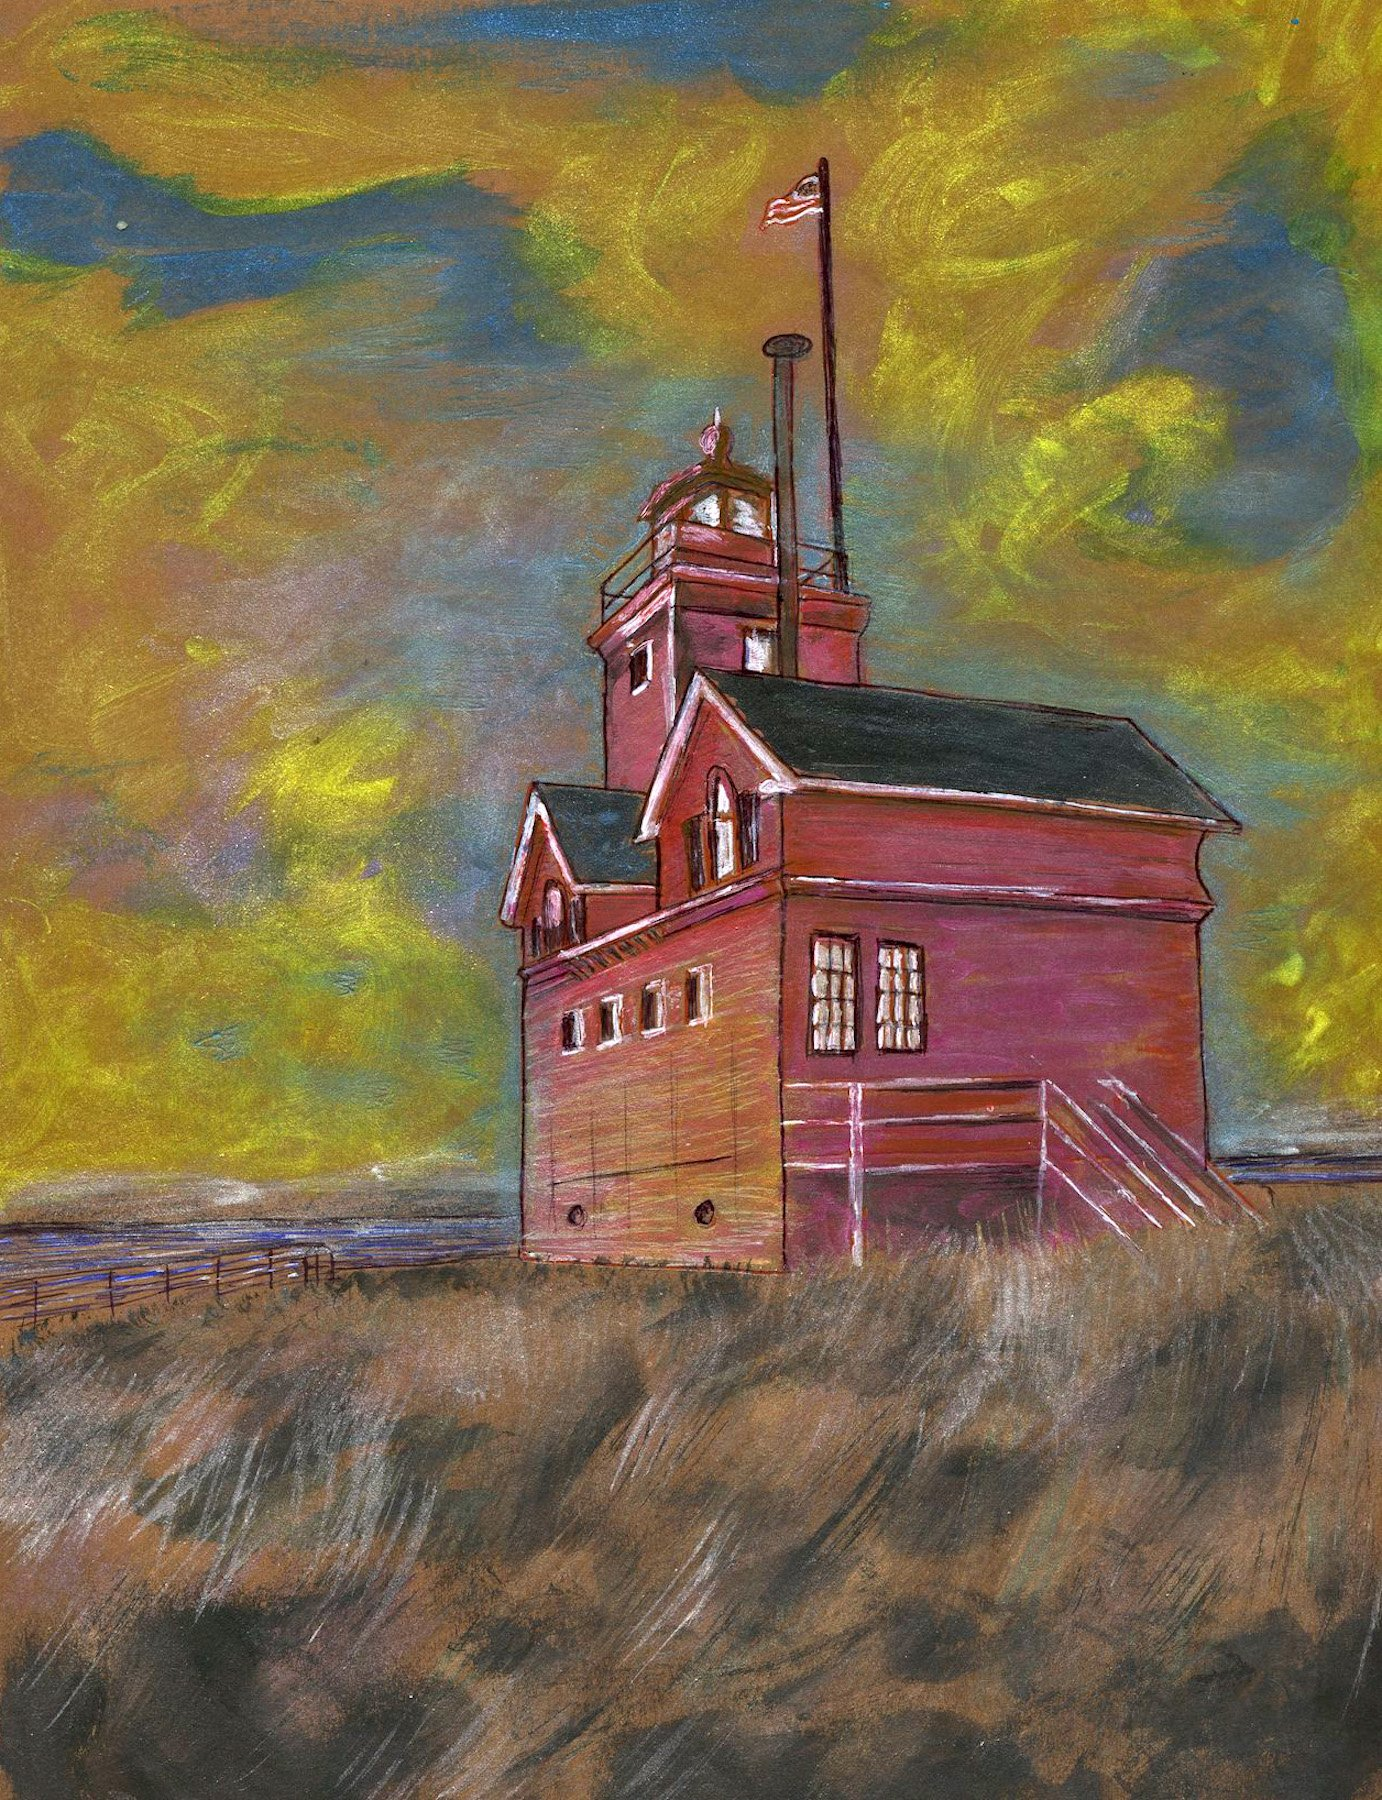 Holland Harbor Light, known as Big Red, is located at the channel entrance connecting Lake Michigan with Lake Macatawa, and gives access to the city of Holland, Michigan. Painting by Richard Rensberry